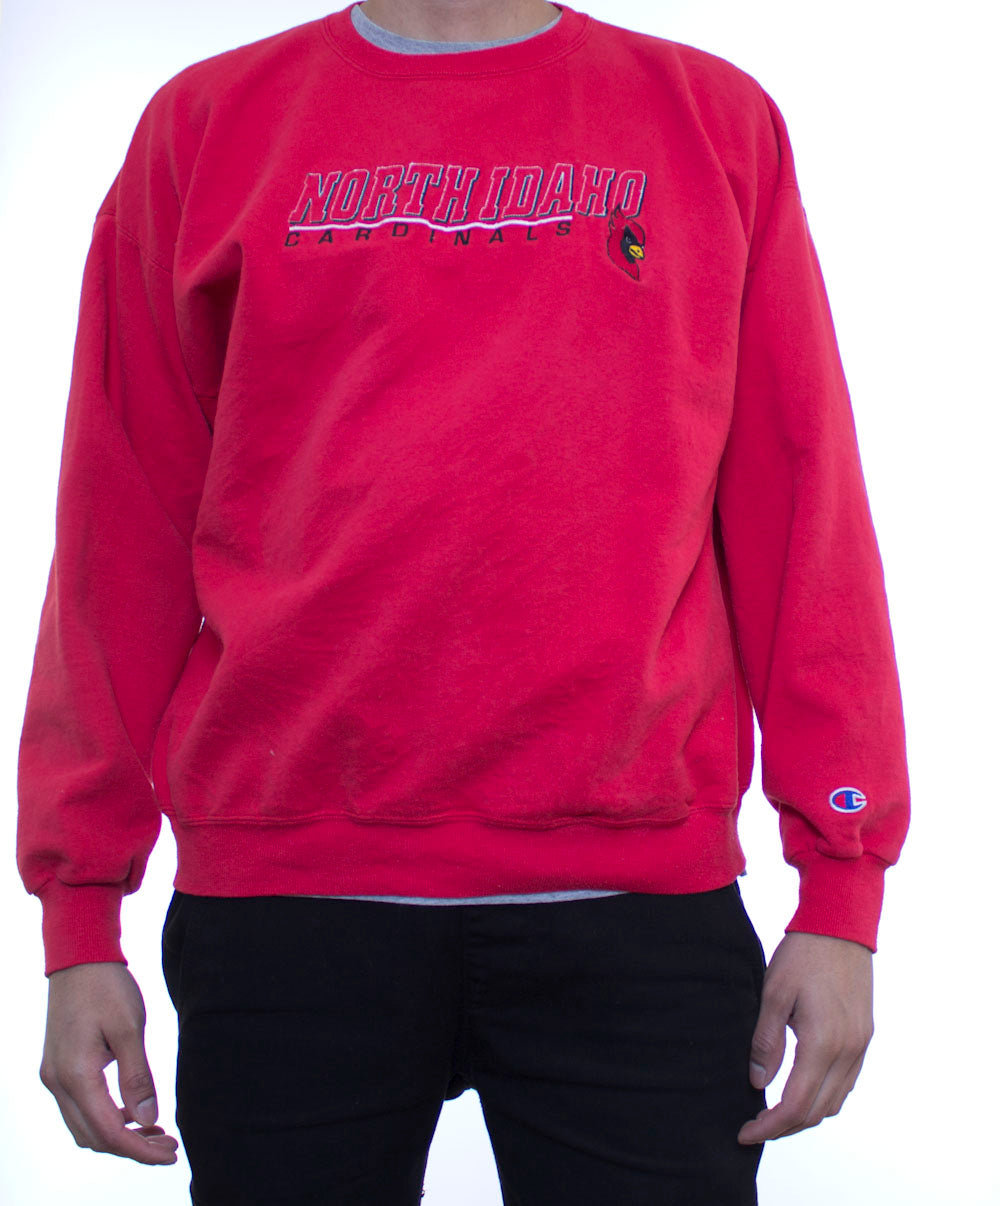 North Idaho Cardinals Champion Crewneck